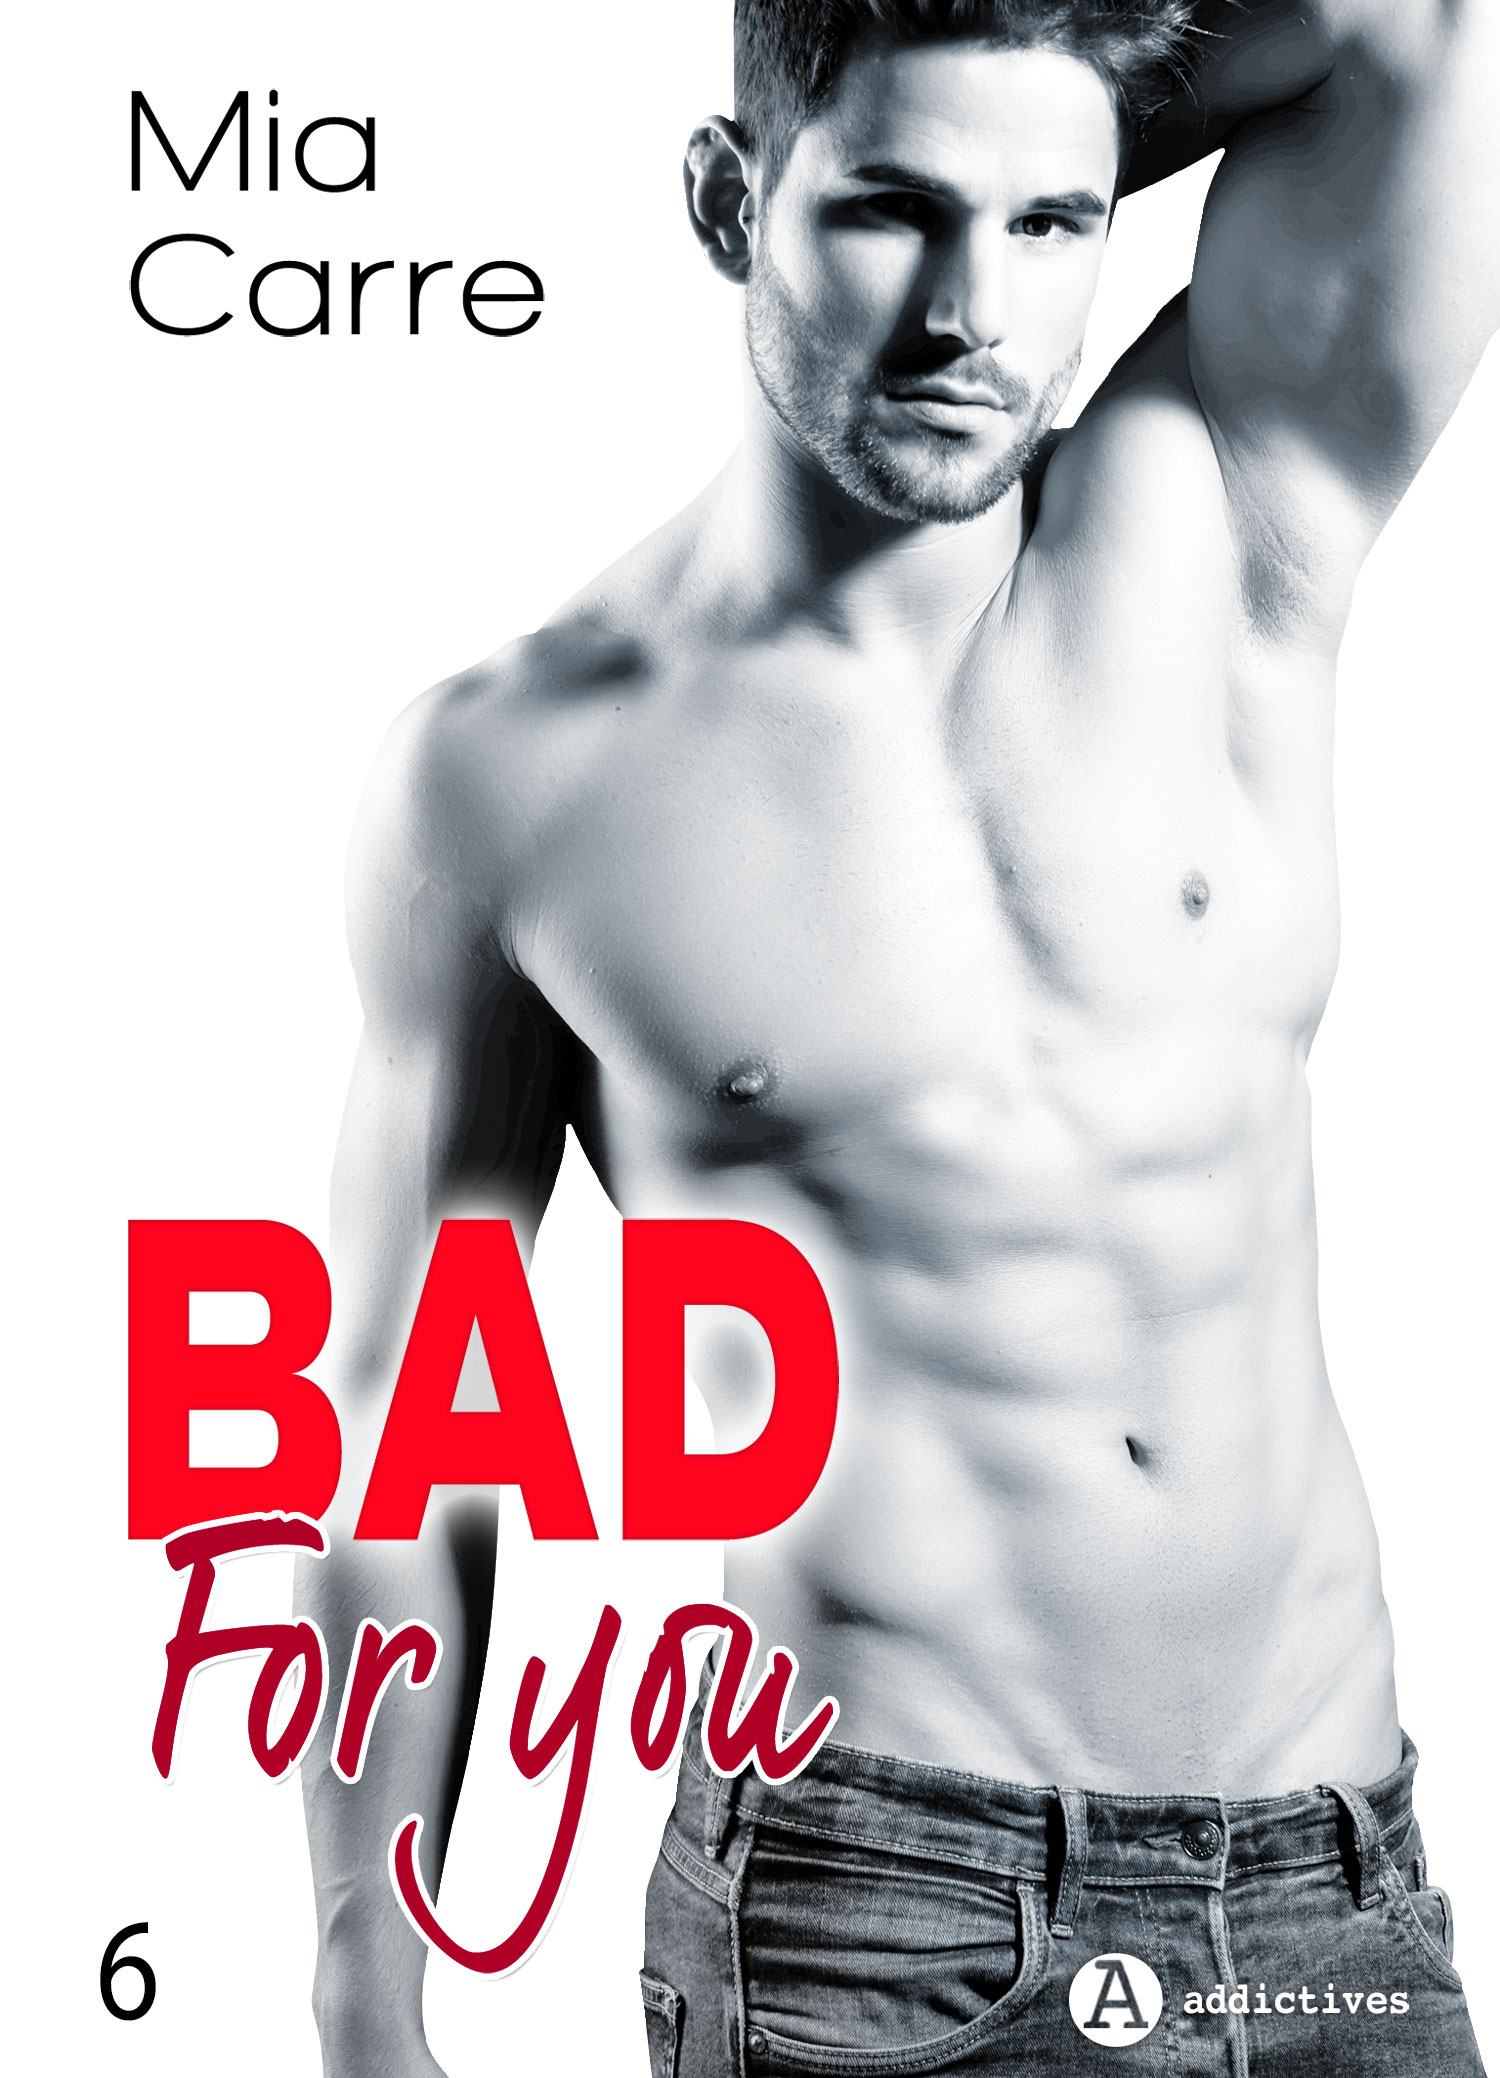 Bad for you – 6